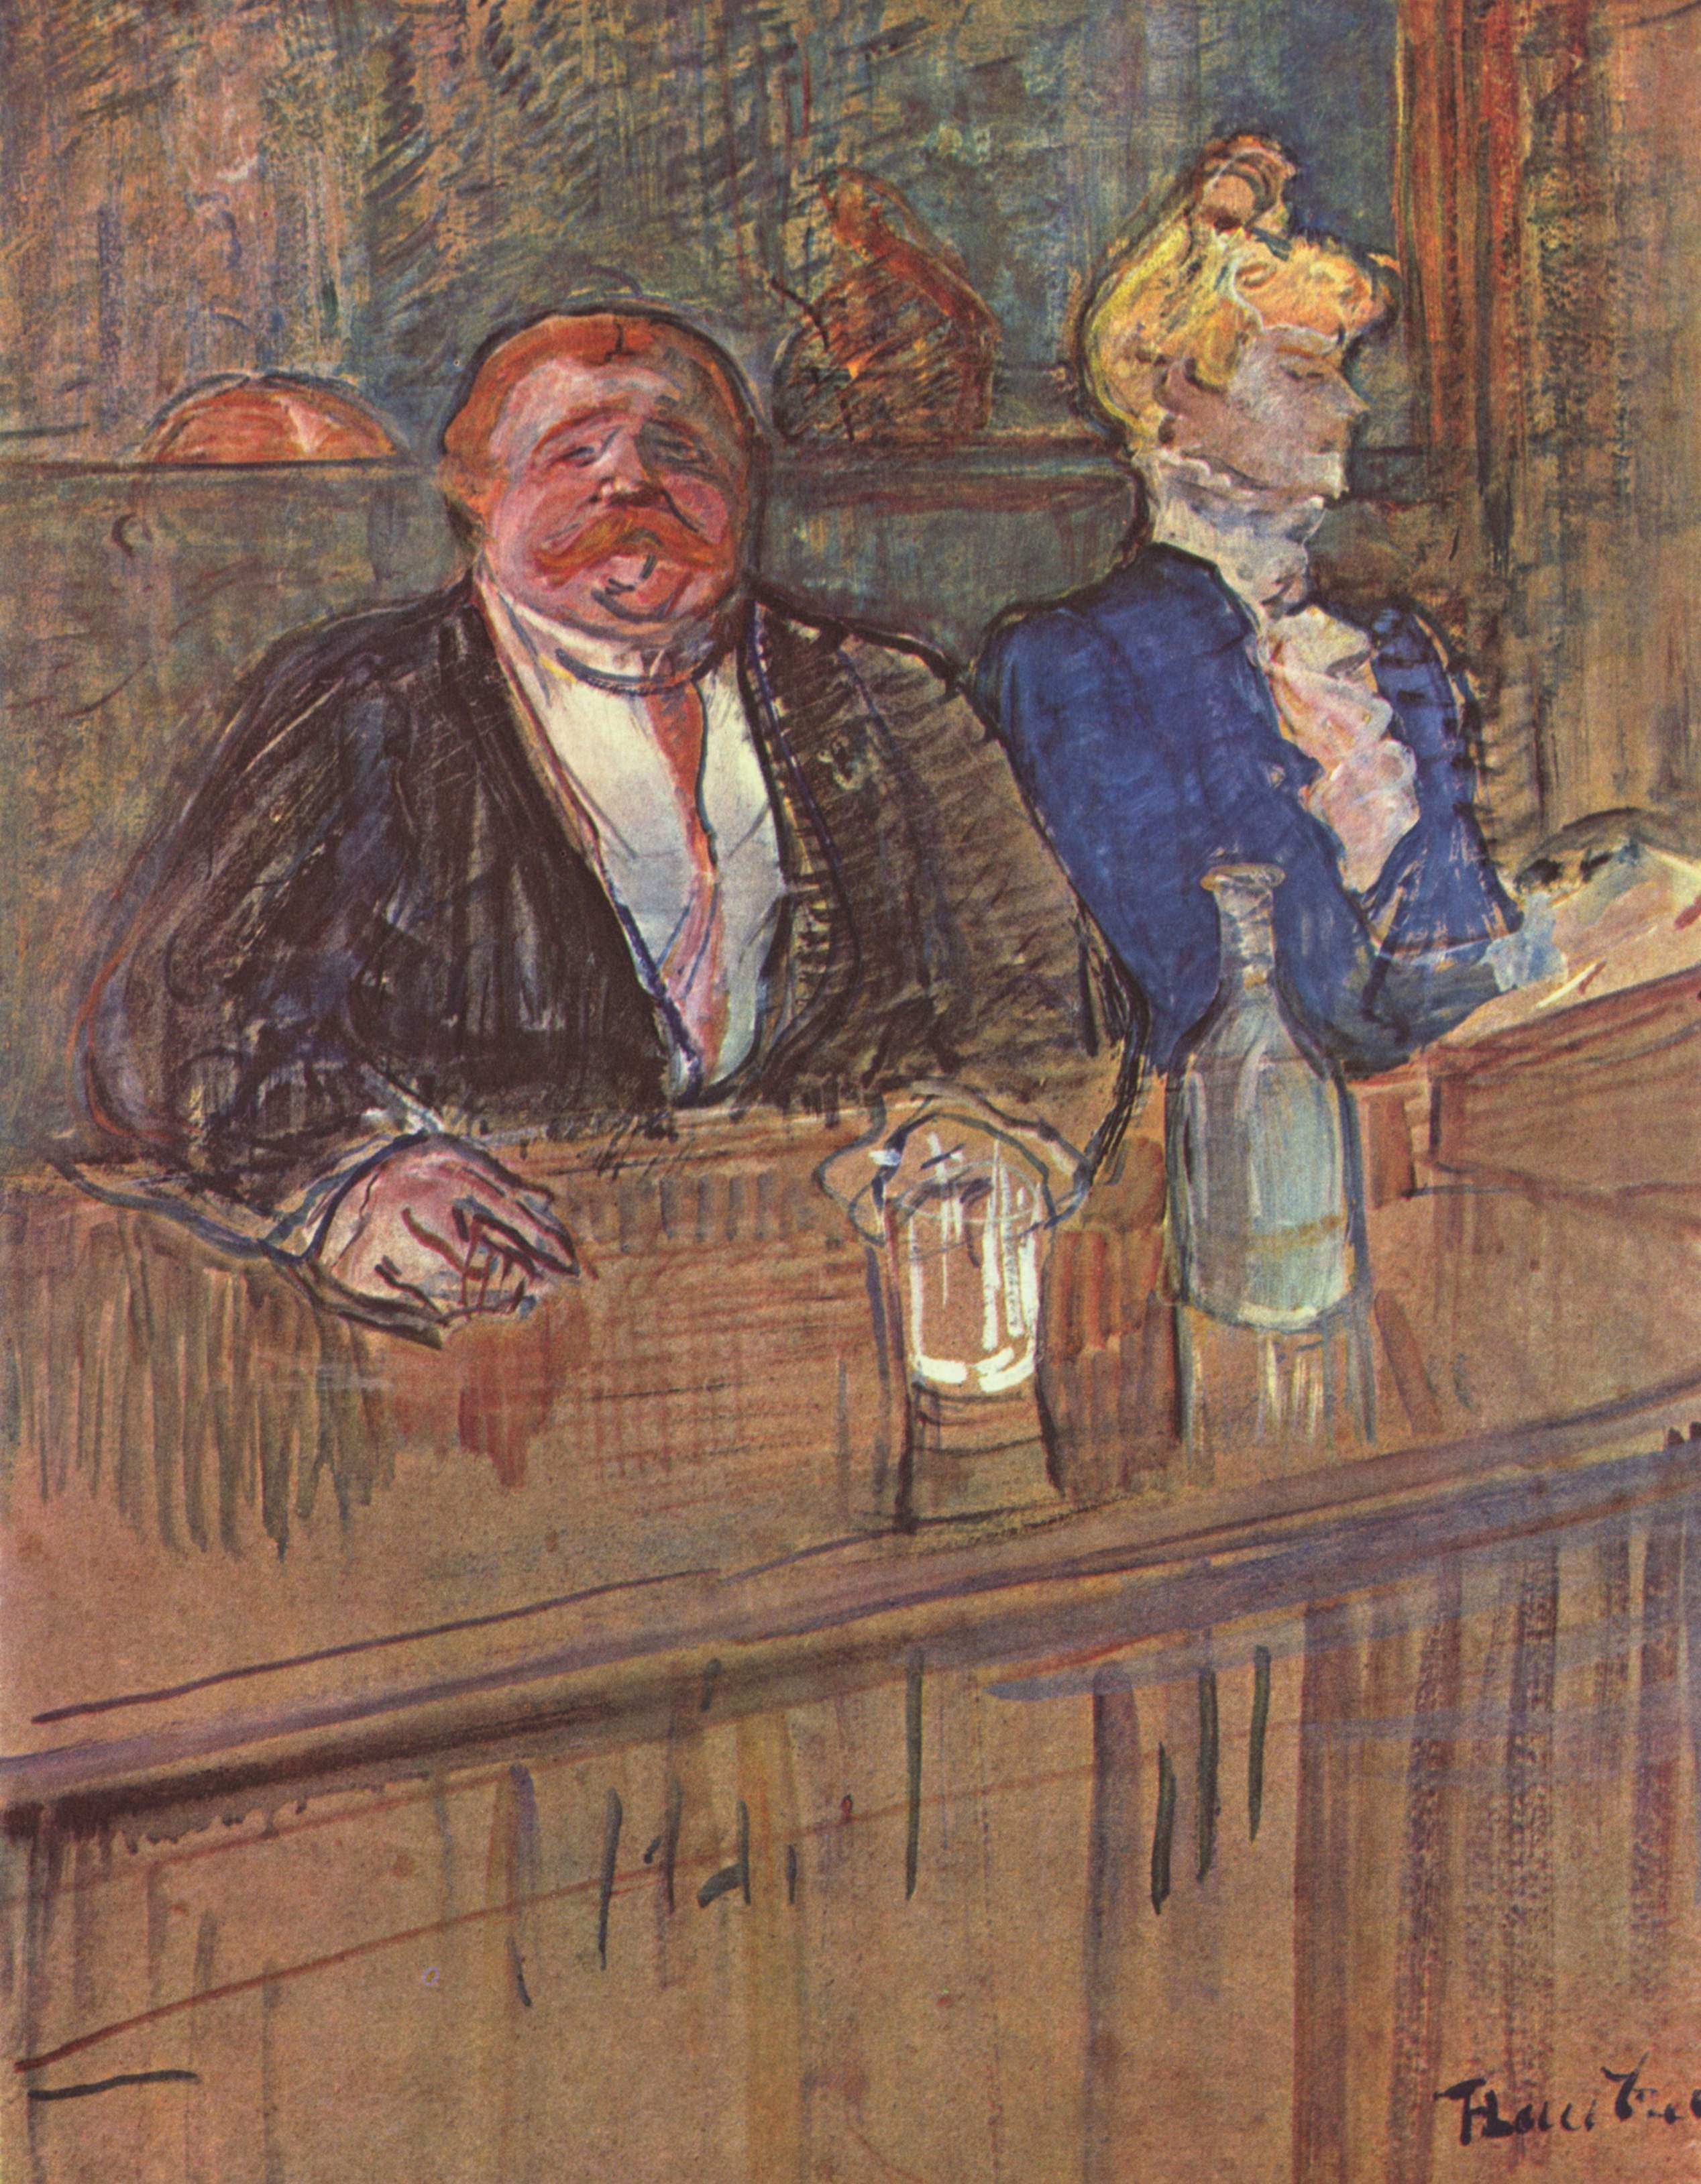 https://uploads3.wikiart.org/images/henri-de-toulouse-lautrec/at-the-cafe-the-customer-and-the-anemic-cashier-1898.jpg